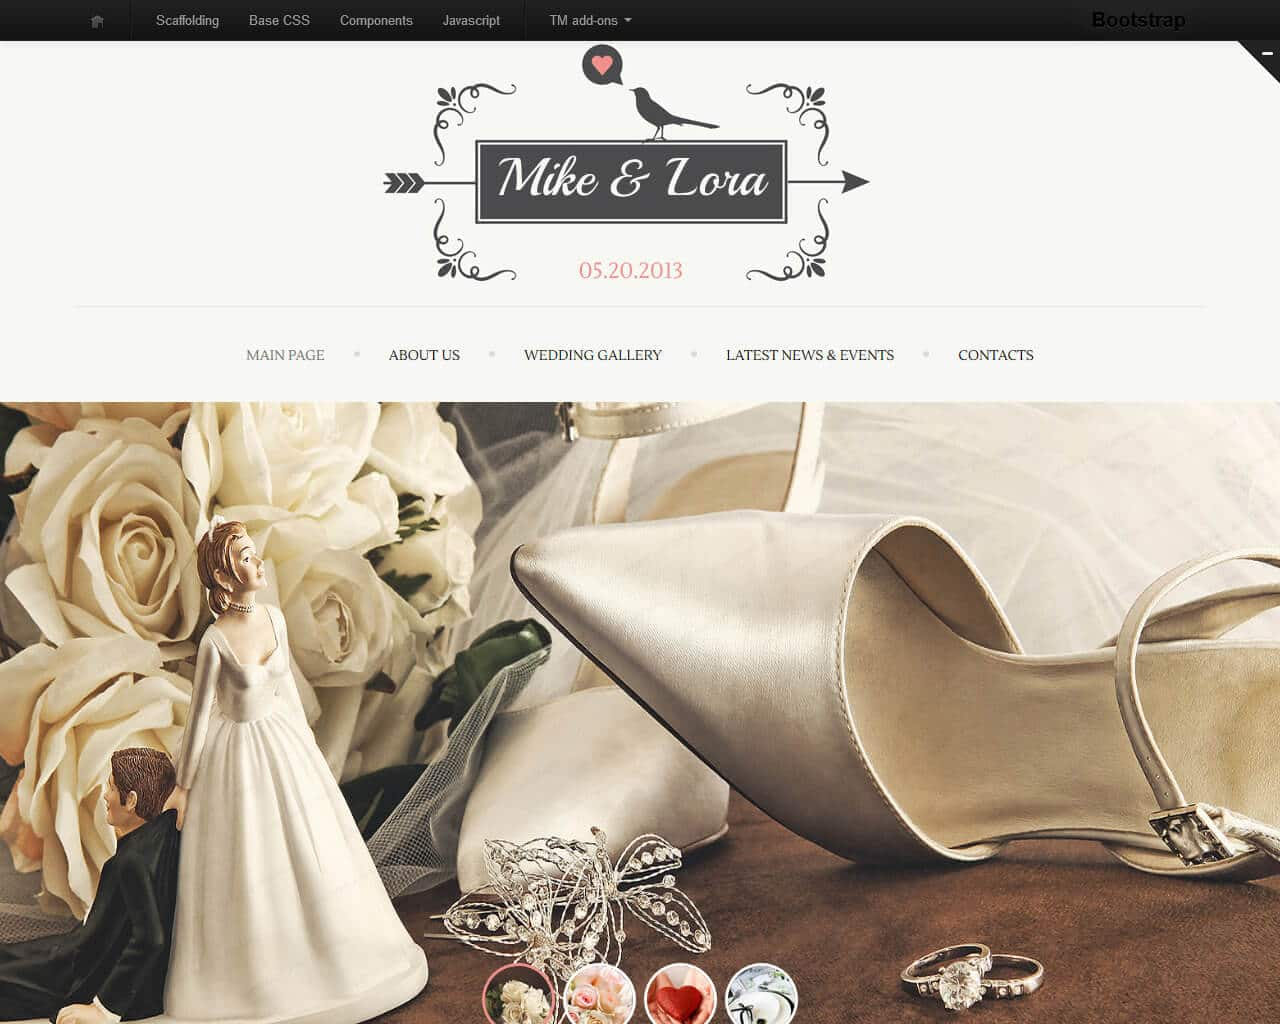 Mike & Lora Website Template